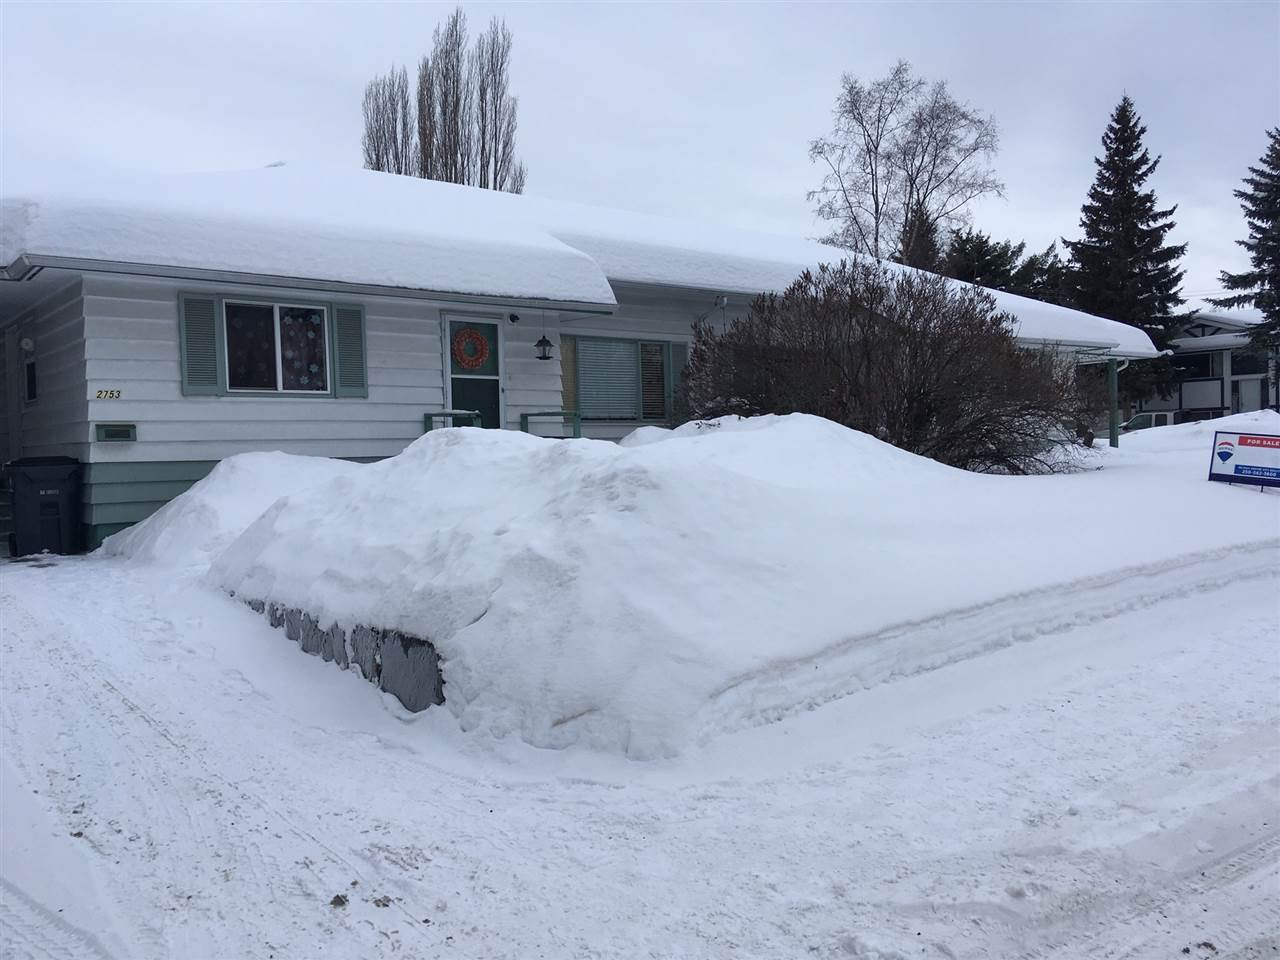 Main Photo: 2753 15TH Avenue in Prince George: Central House Duplex for sale (PG City Central (Zone 72))  : MLS®# R2428904